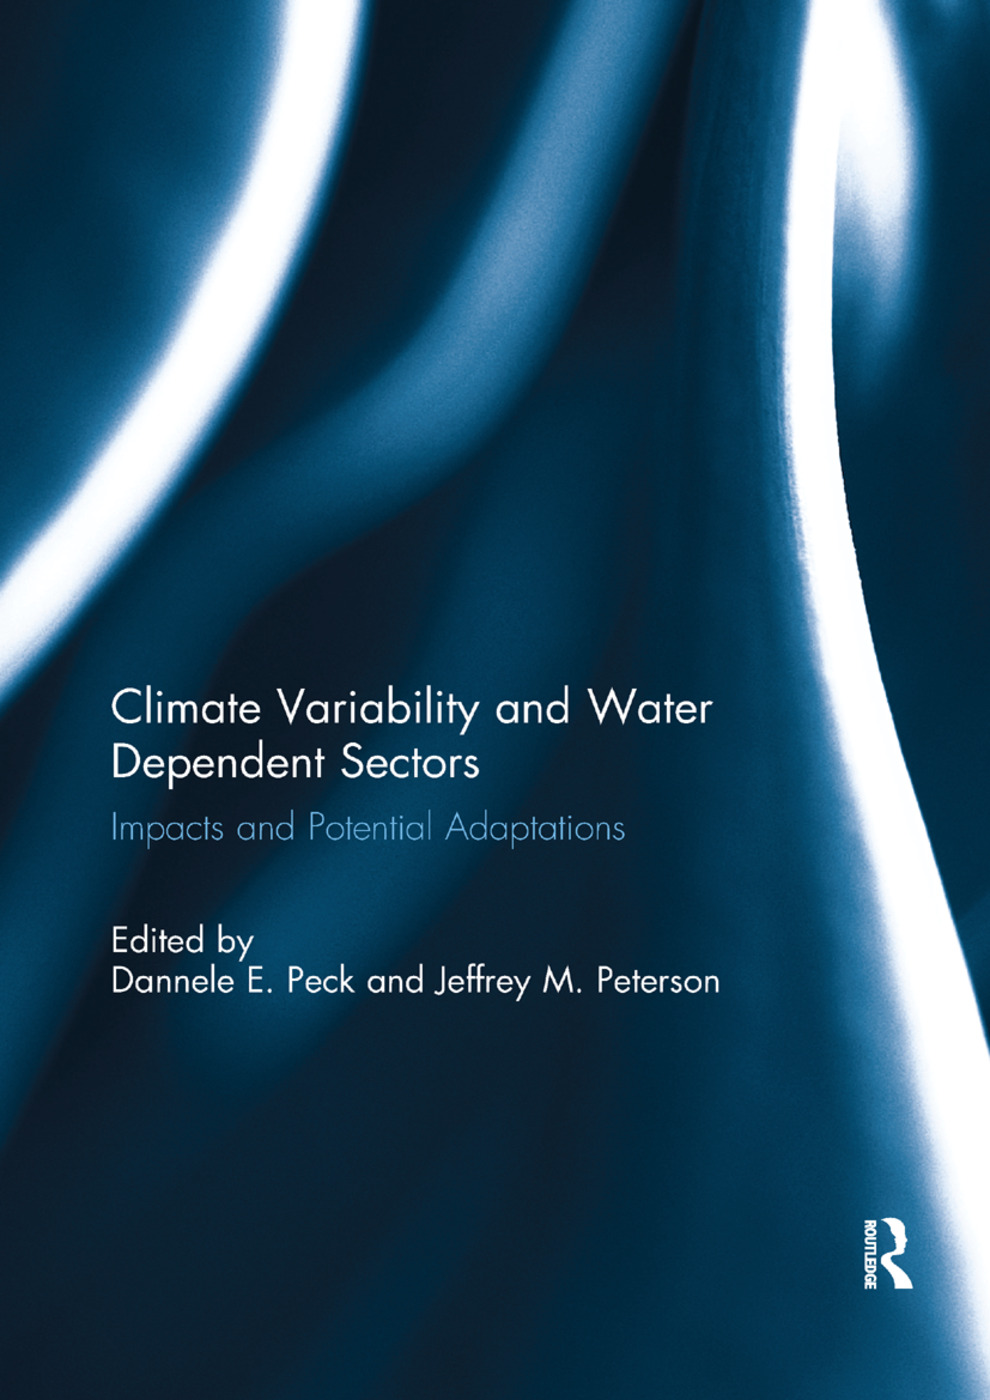 Climate Variability and Water Dependent Sectors